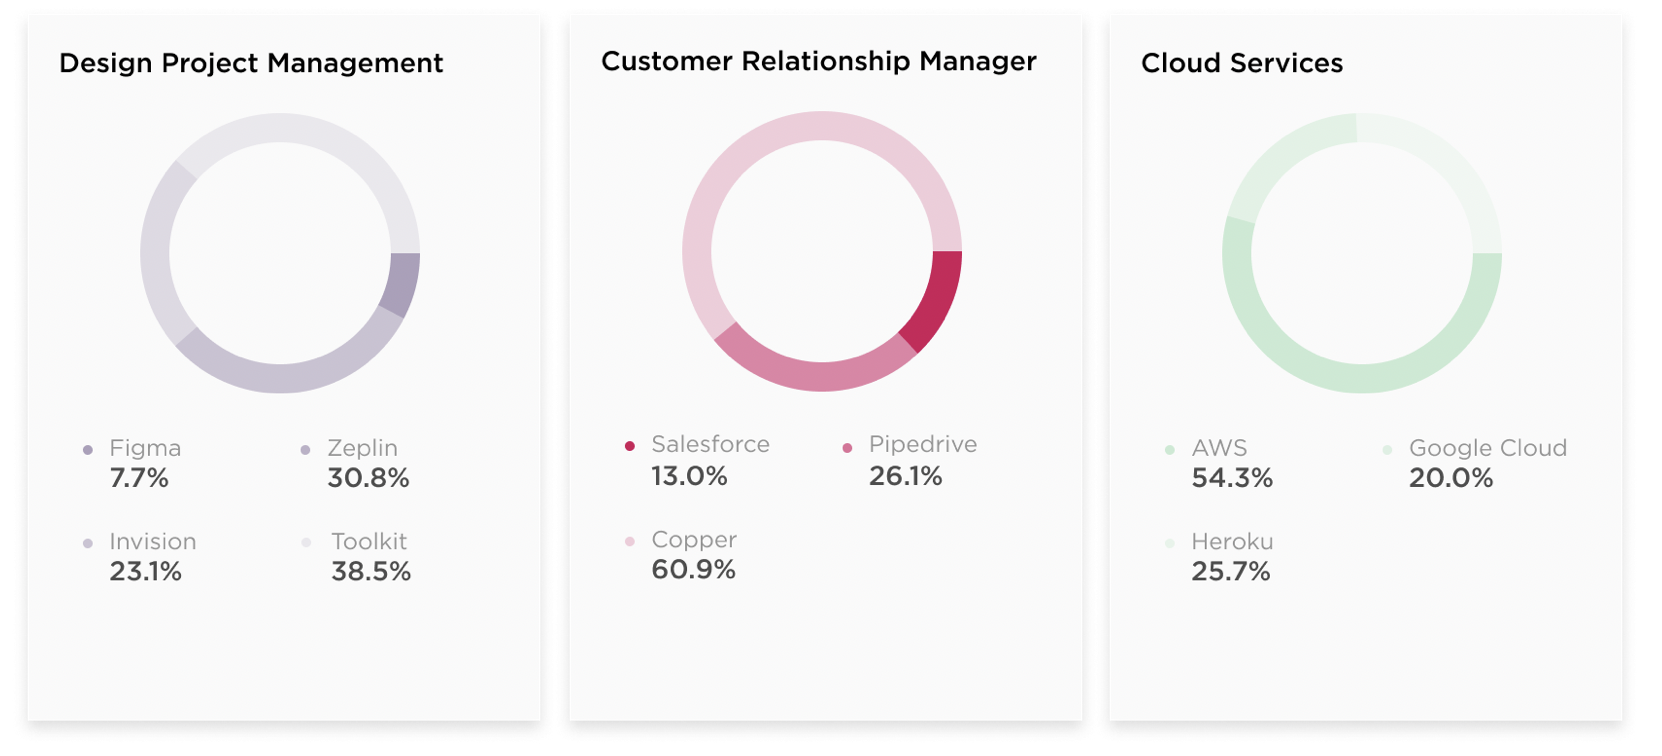 According to the Brex Report, Copper is the most popular CRM among startups